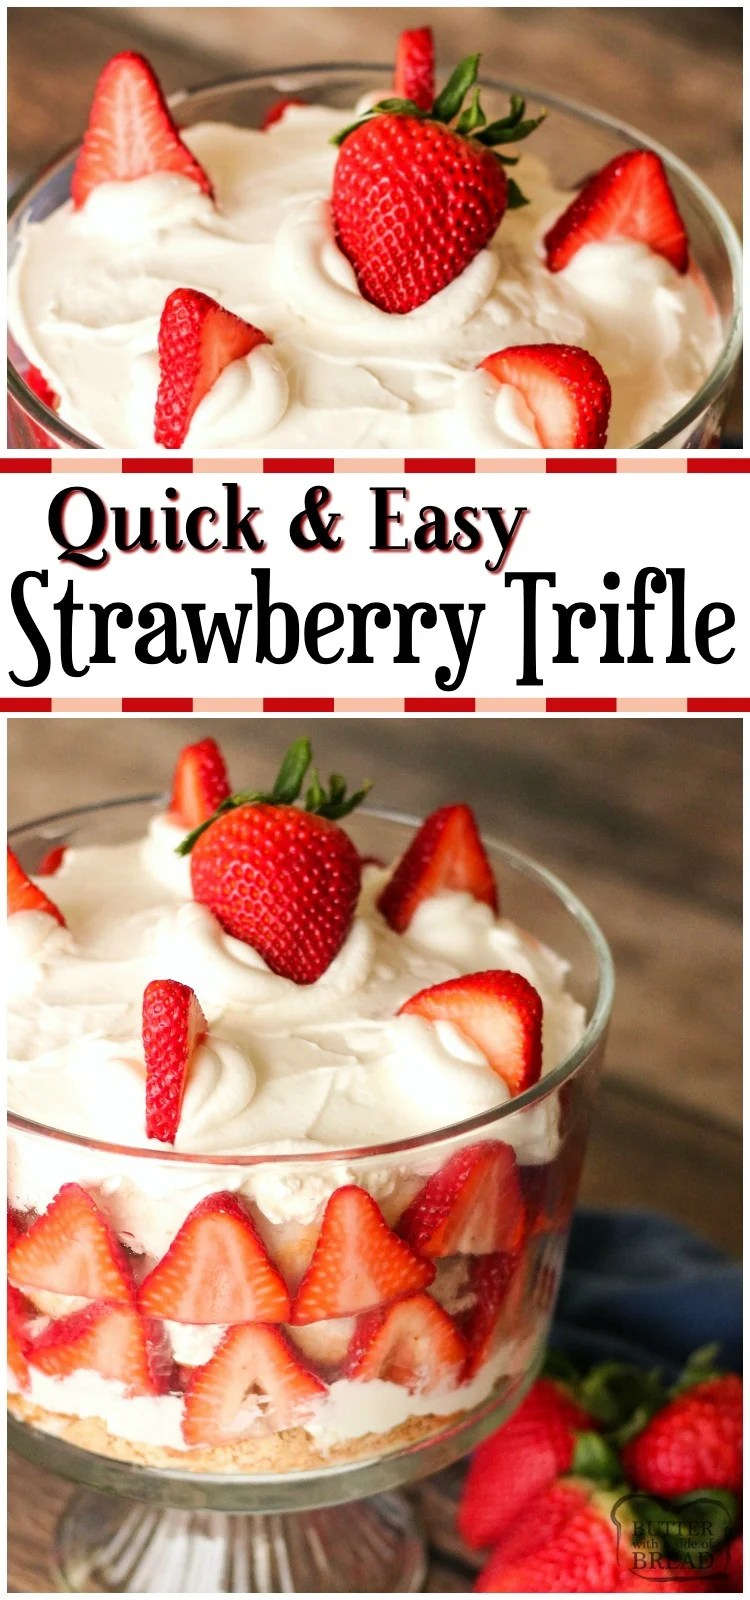 Our Strawberry Trifle recipe is a delicious dessert layered with fresh strawberries, angel food cake and cream cheese whipped cream! Elegant dessert that's made in minutes with very simple ingredients. #strawberries #trifle #cake #whippedcream #dessert #nobake #recipe from BUTTER WITH A SIDE OF BREAD